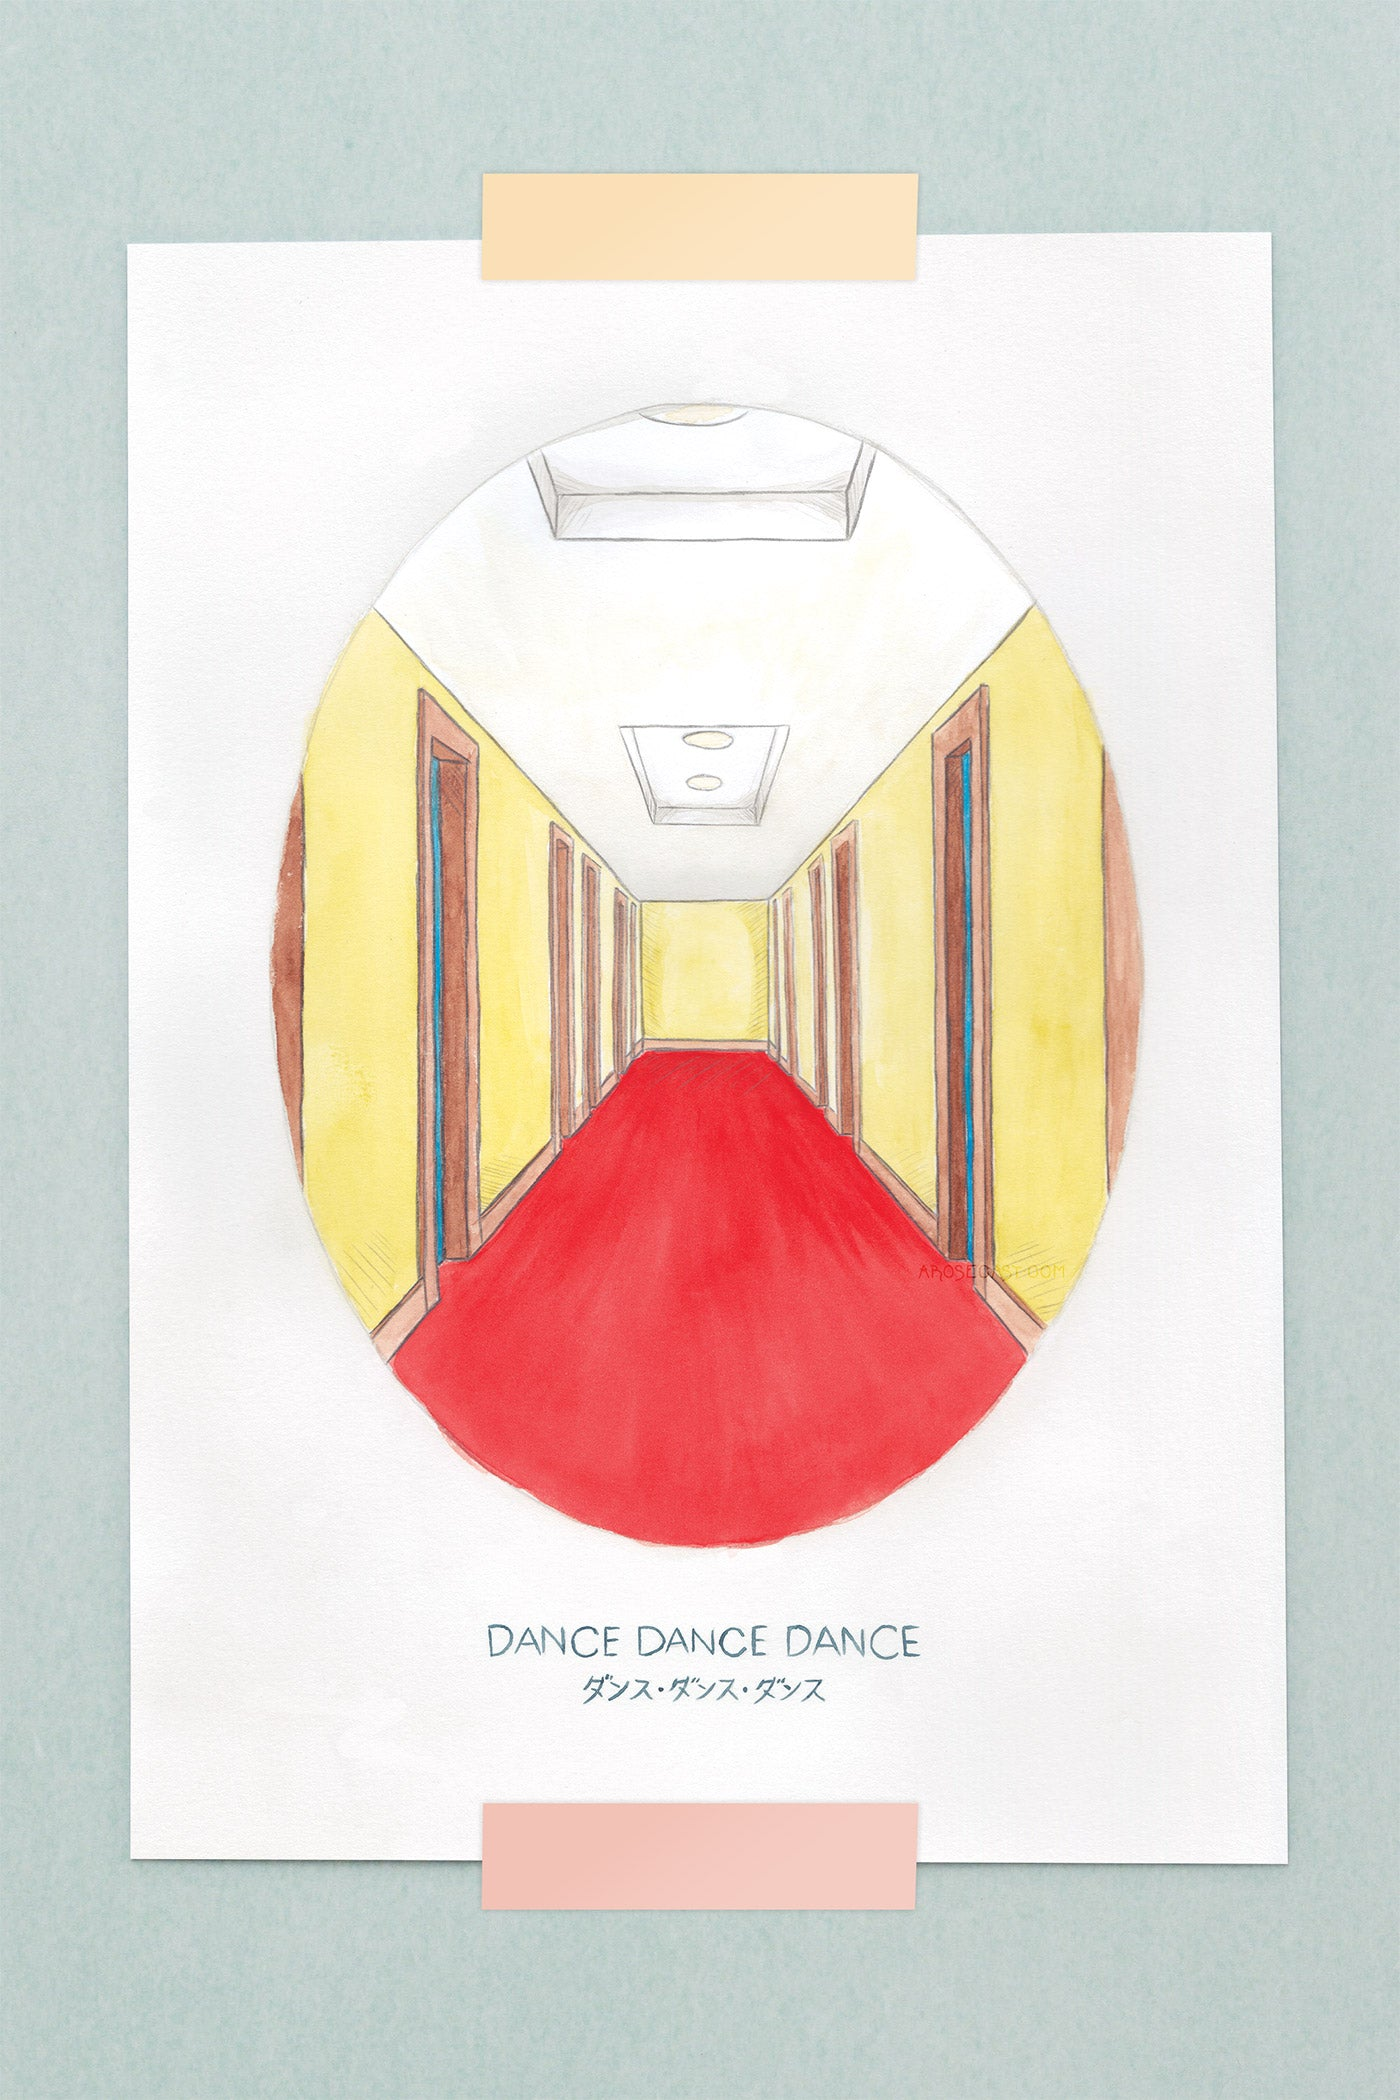 Haruki Murakami's Dance, Dance, Dance Novel Illustration Art Print - A Rose Cast